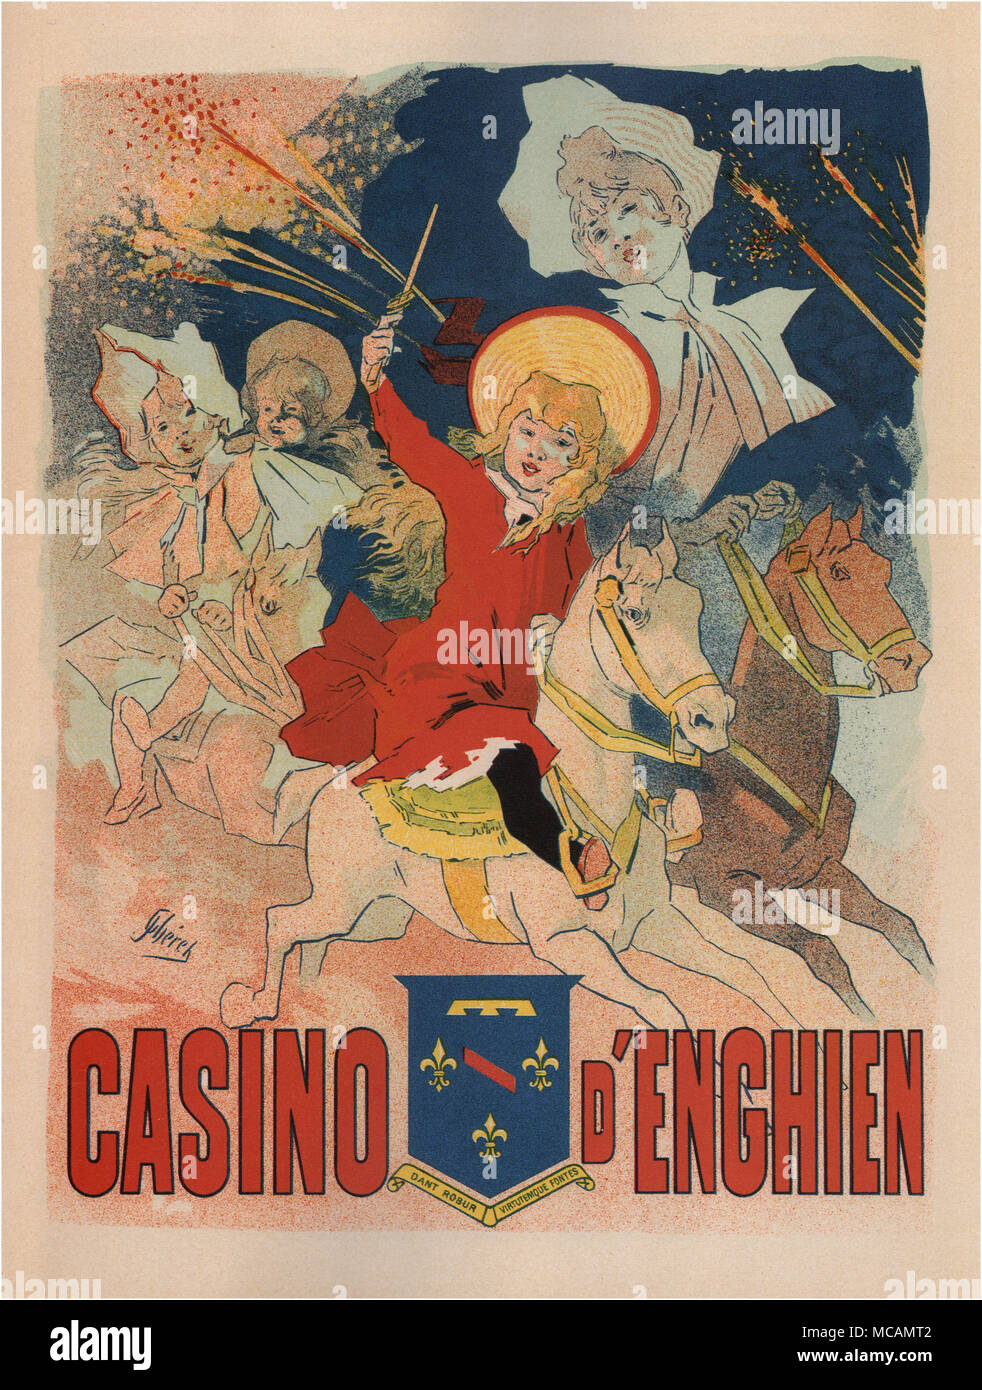 Show posters of the Casino of Enghien.  The crest reads natural springs give strength and virtue about the town of Enghien.  The poster was designed by Jules Ch?ret (1836 ? 1932) was a French painter and lithographer.  He worked on everything from theater to advertising. - Stock Image